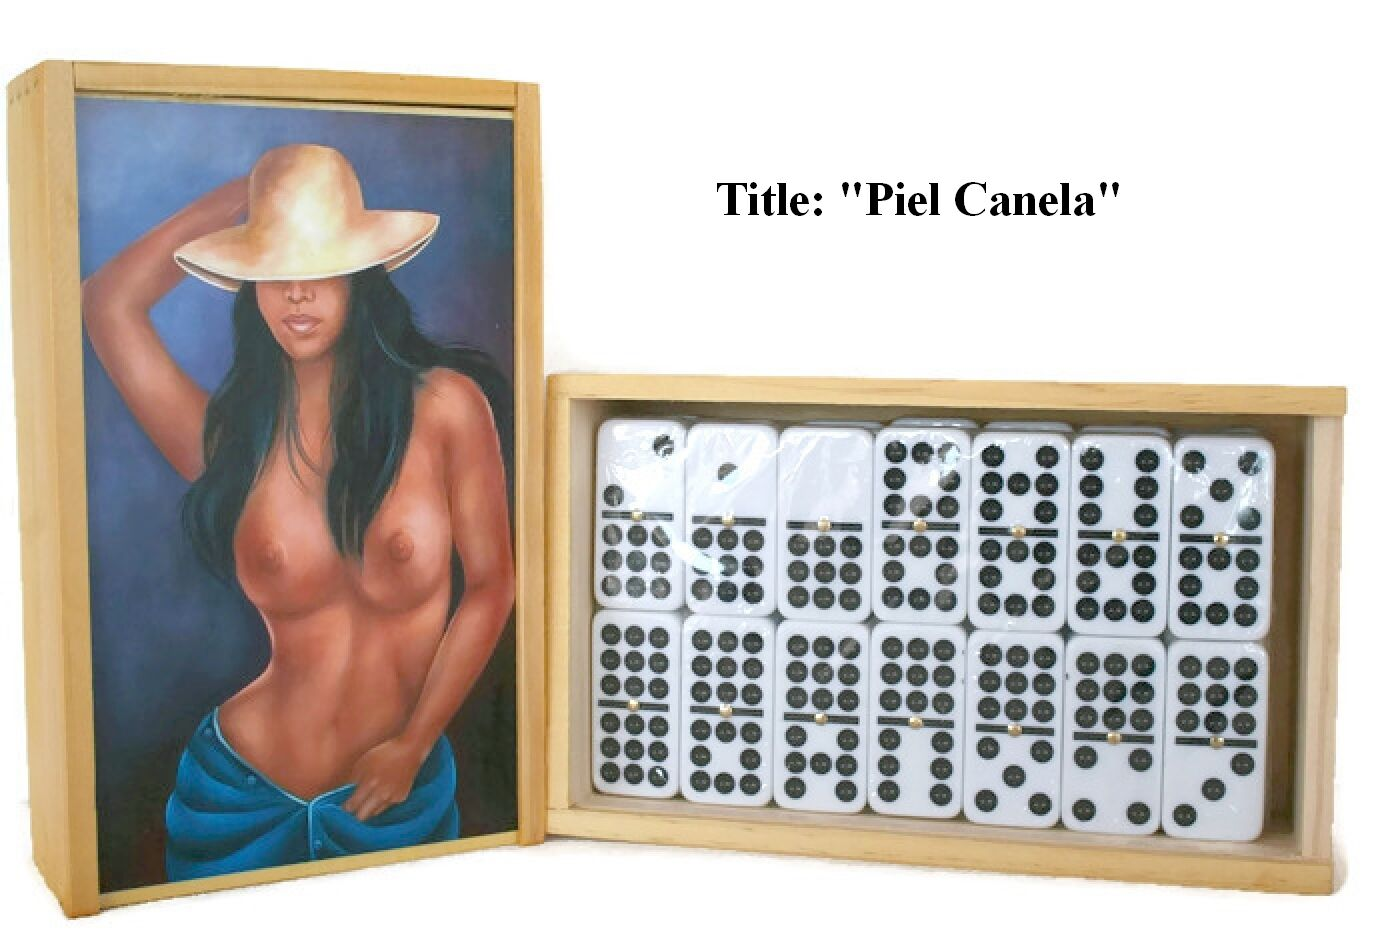 Father's Day Gift  Domino Set Double Nine  Piel Canela  Oil painting on Top.